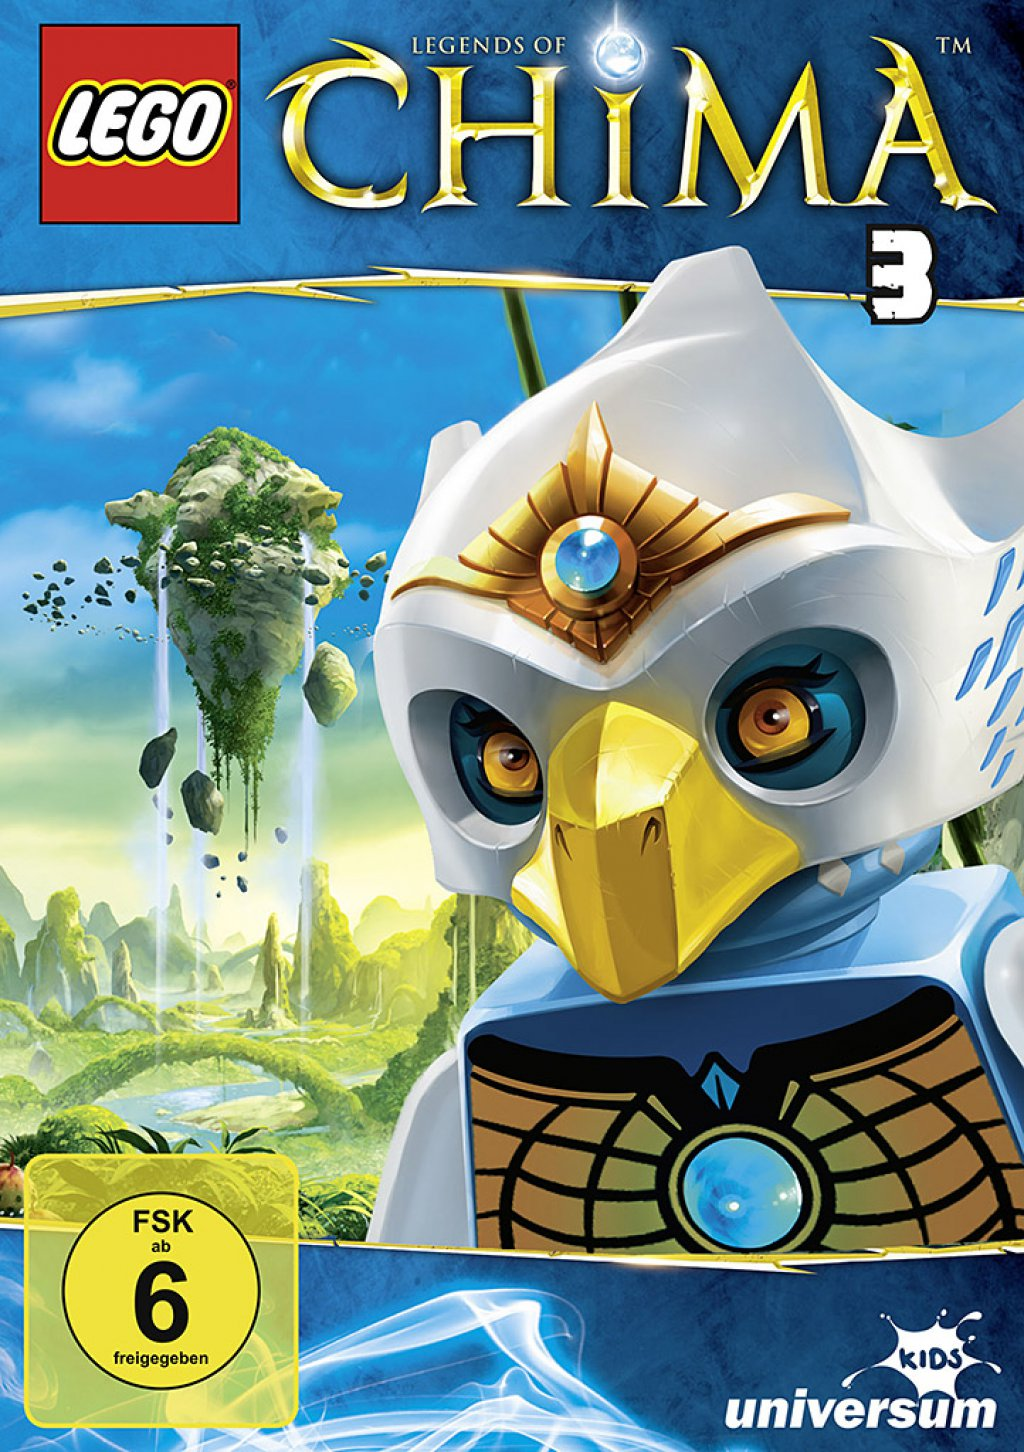 LEGO - Legends of Chima - DVD 3 (DVD)